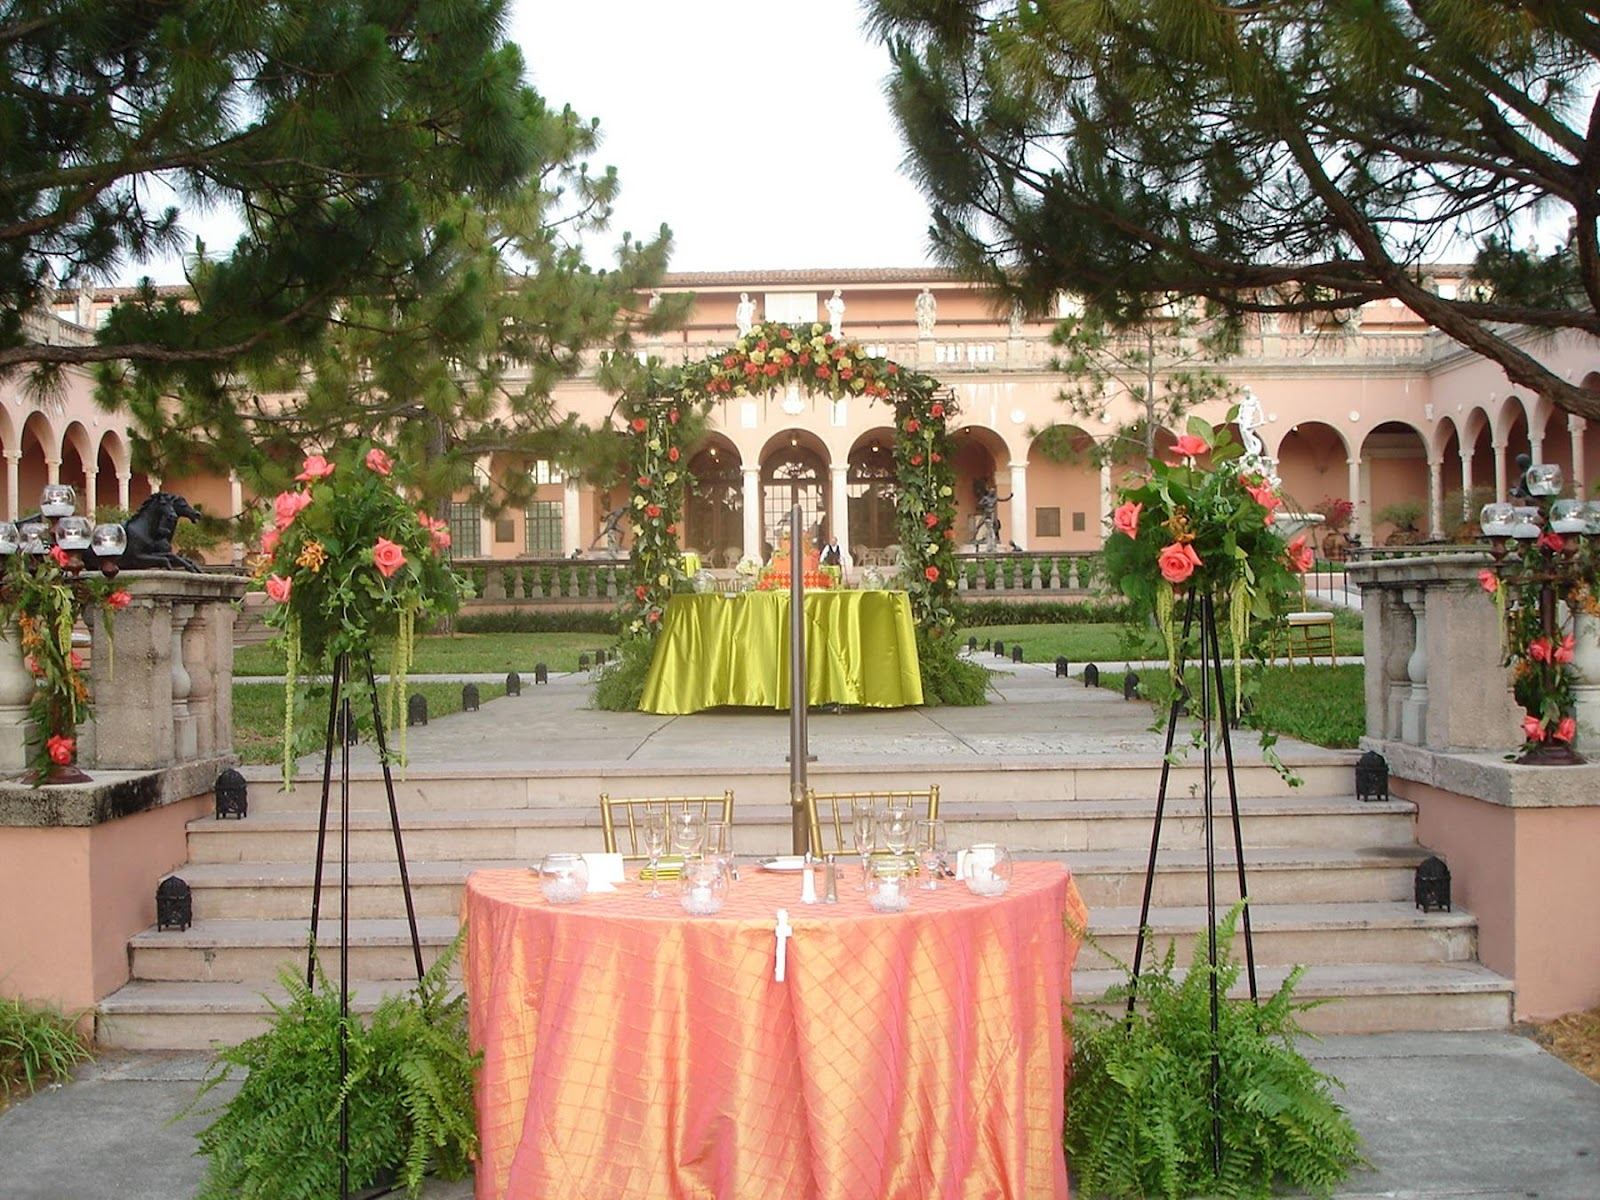 Sweetheart table at Ringling